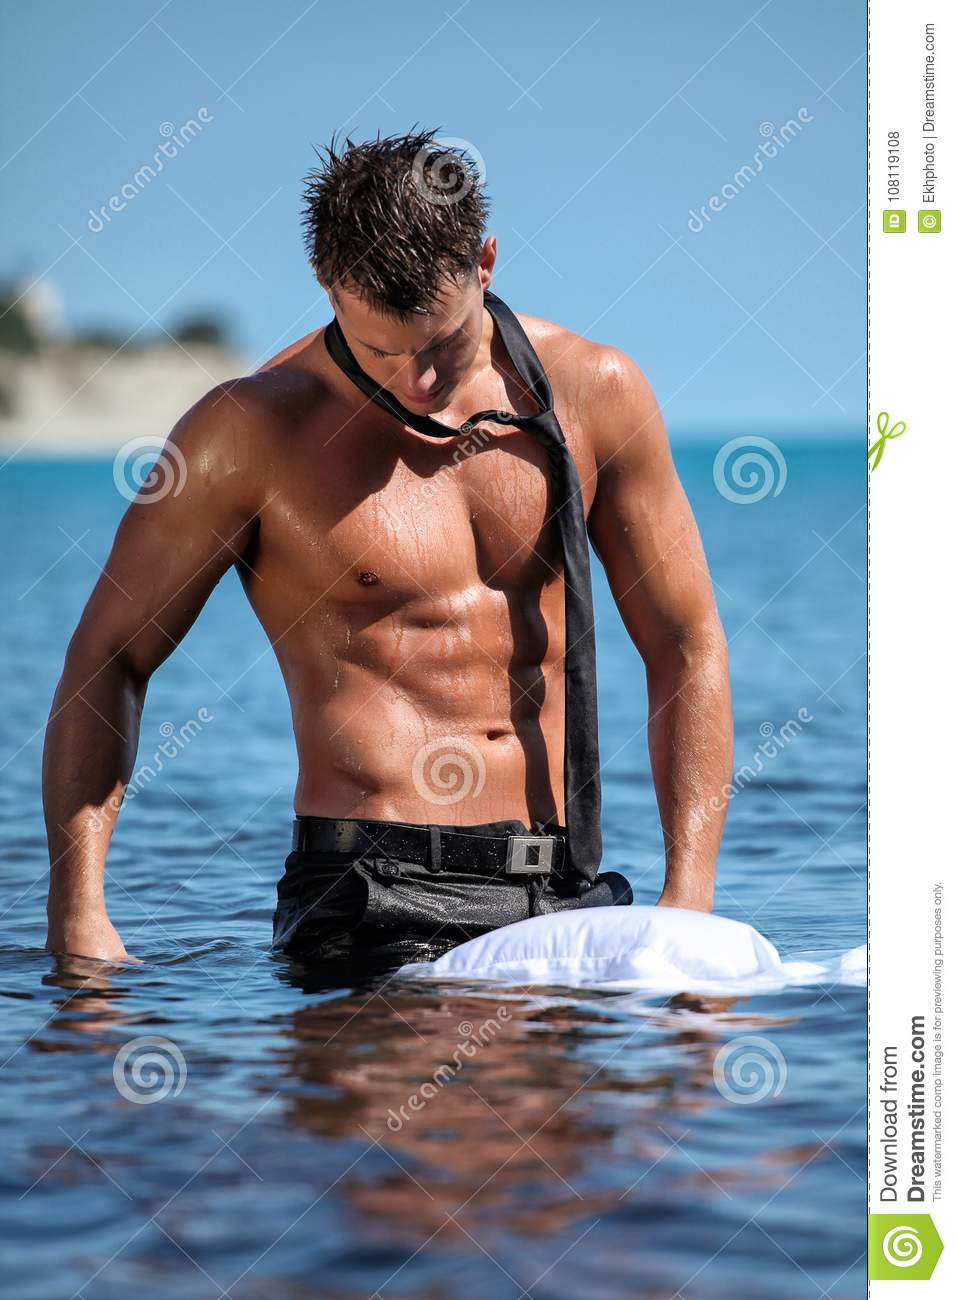 7dea3c6855 Muscular young wet guy standing in the sea takes off his business suit with  a tie outdoors